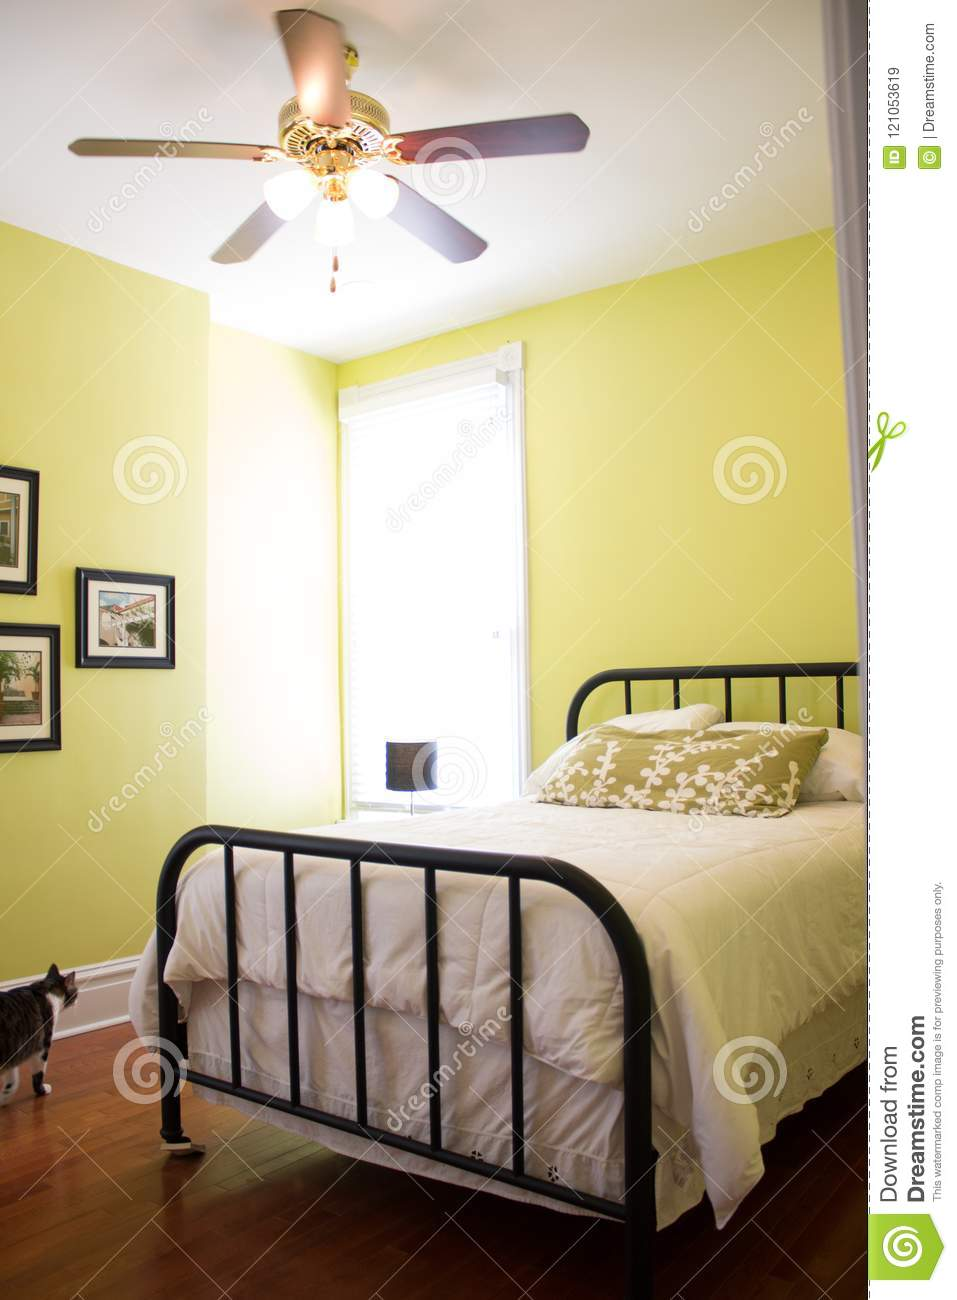 Modern Bed In Modern Home House Room Editorial Stock Image - Image ...